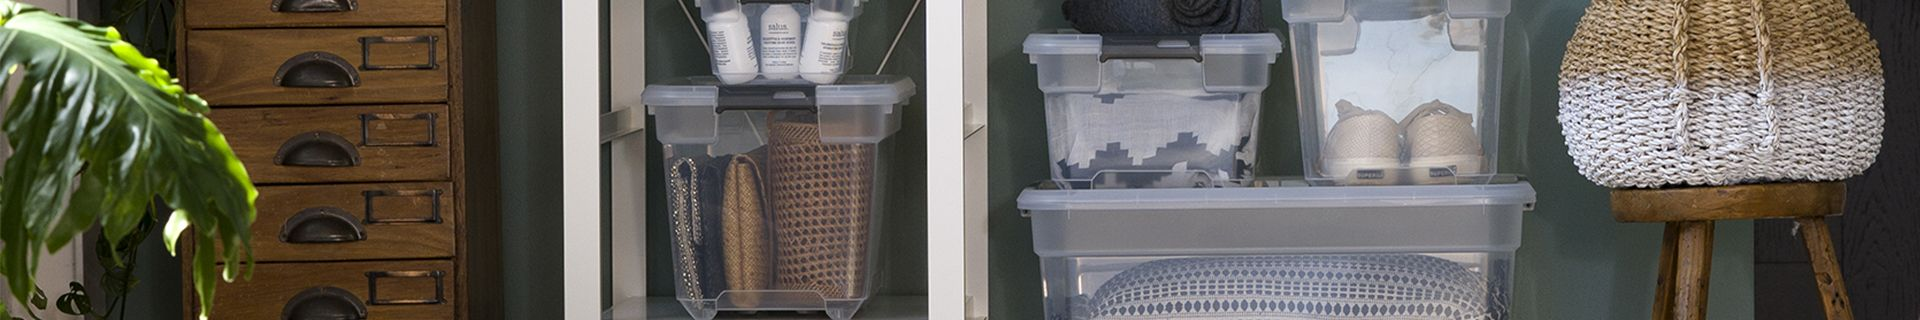 Shelving with storage tubs